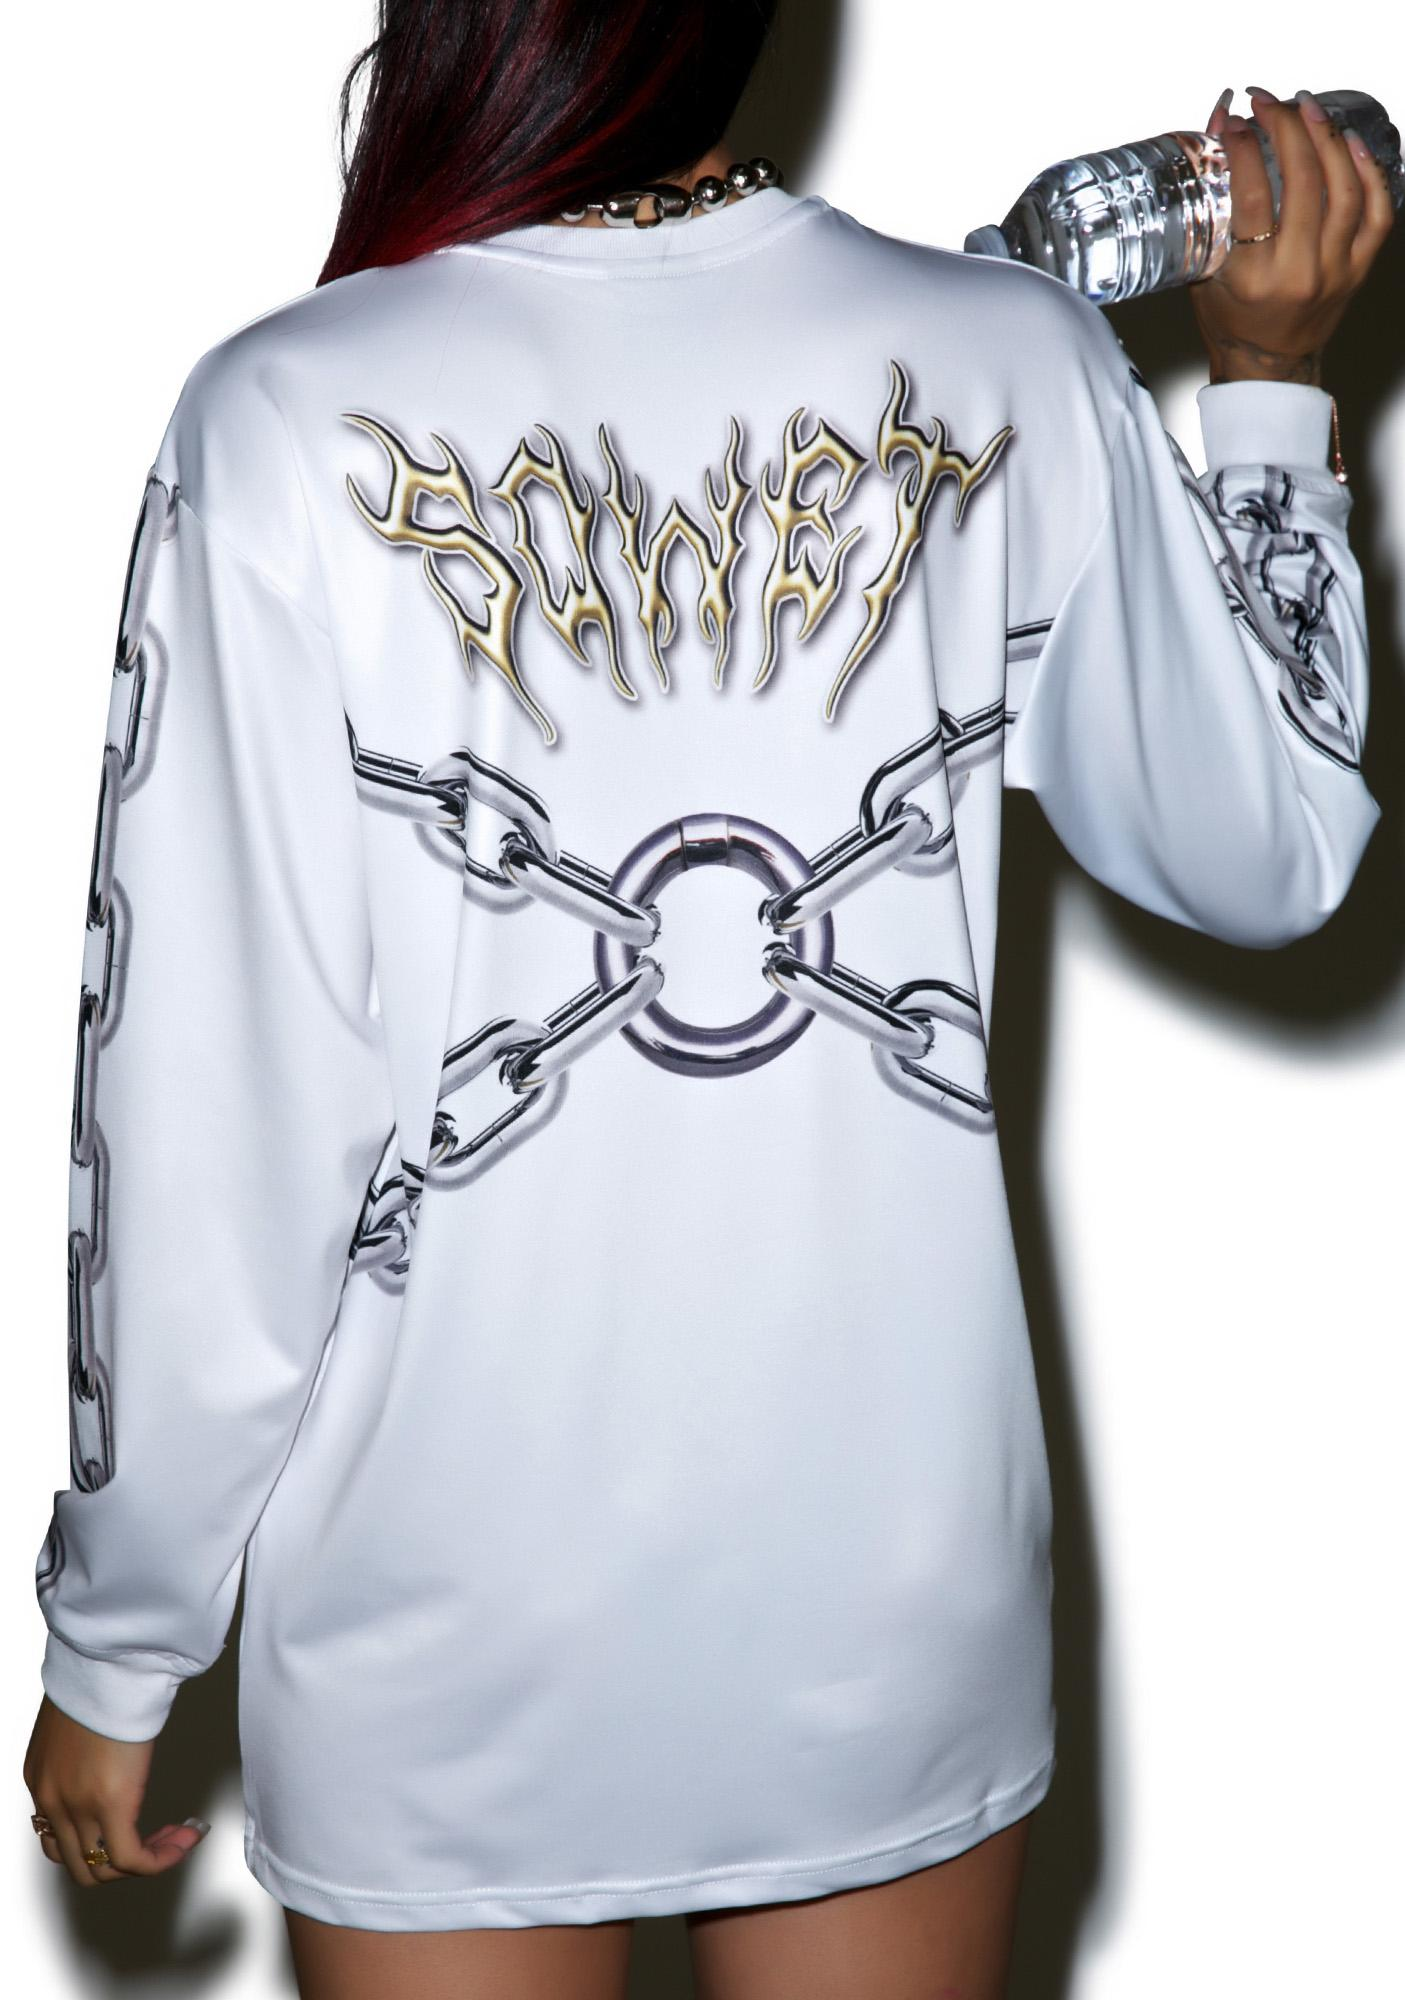 SOWET Locked Up Long Sleeve Shirt